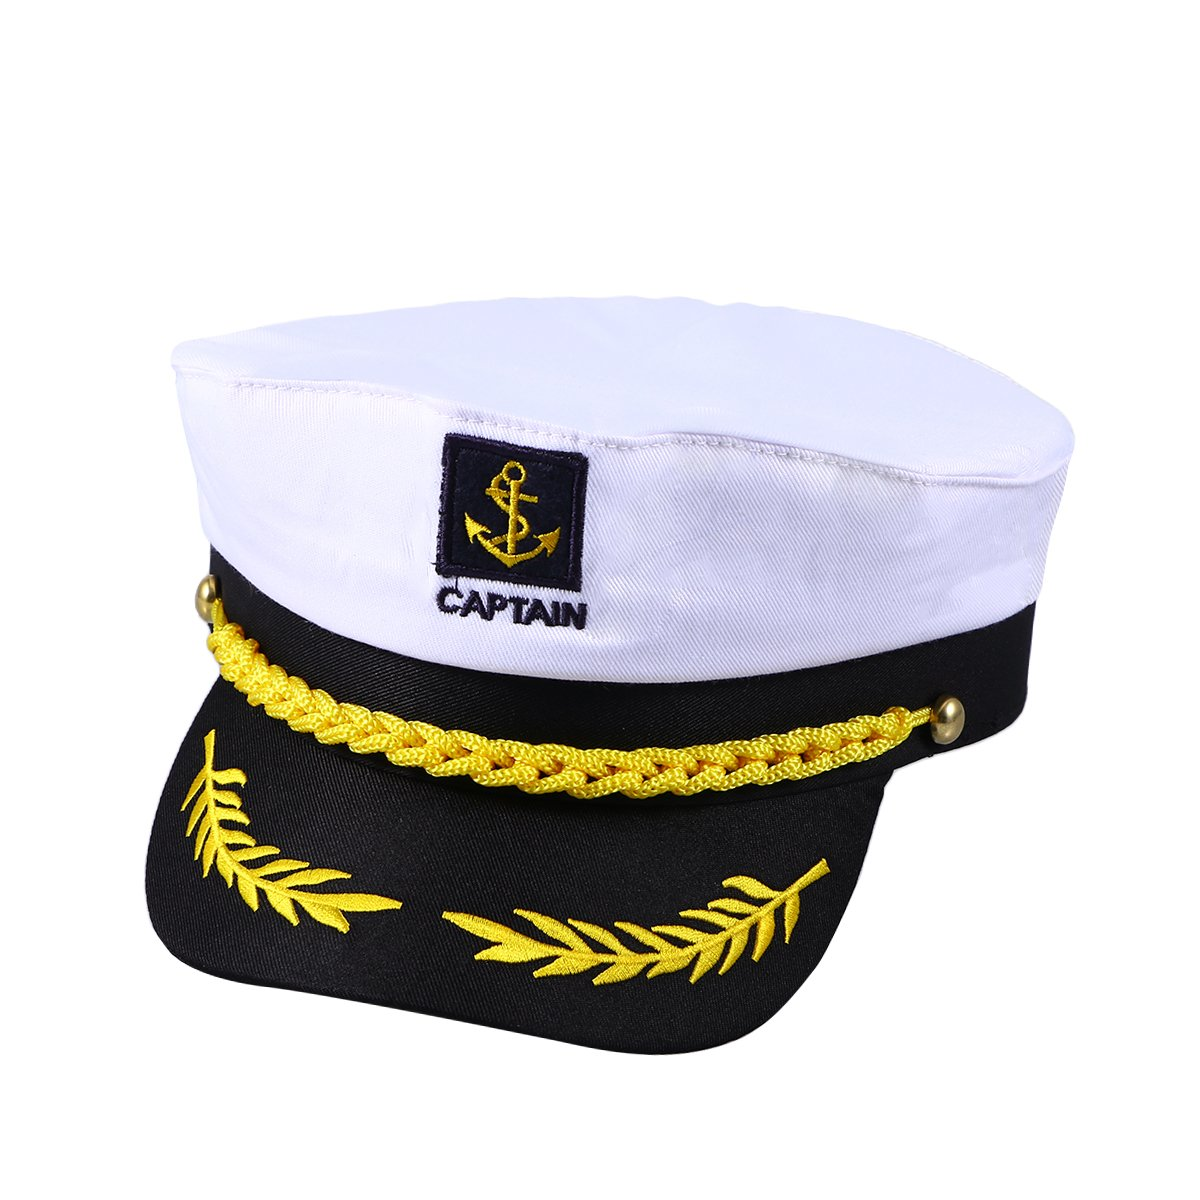 Tinksky Yacht Boat Ship Sailor Captain Costume Hat Cap Navy Marine Admiral (White)